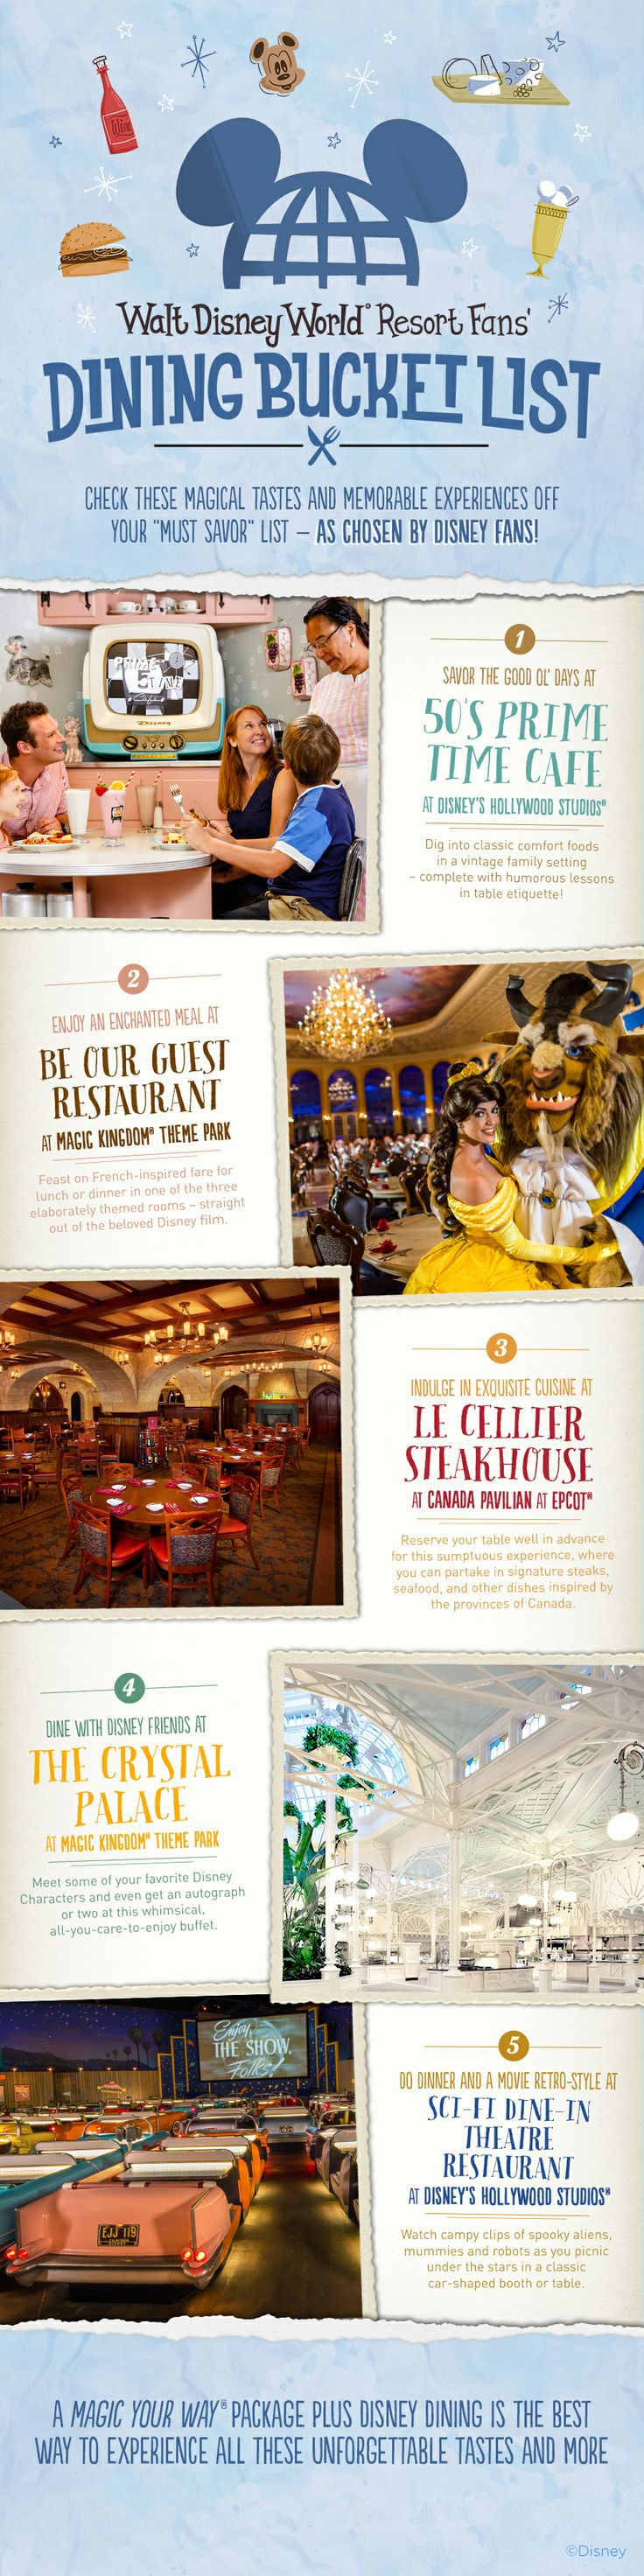 "Check these magical tastes and memorable experiences off your ""must savor"" list! Remember, a Magic Your Way Package plus Disney Dining is the best way to experience all these unforgettable tastes and more!"